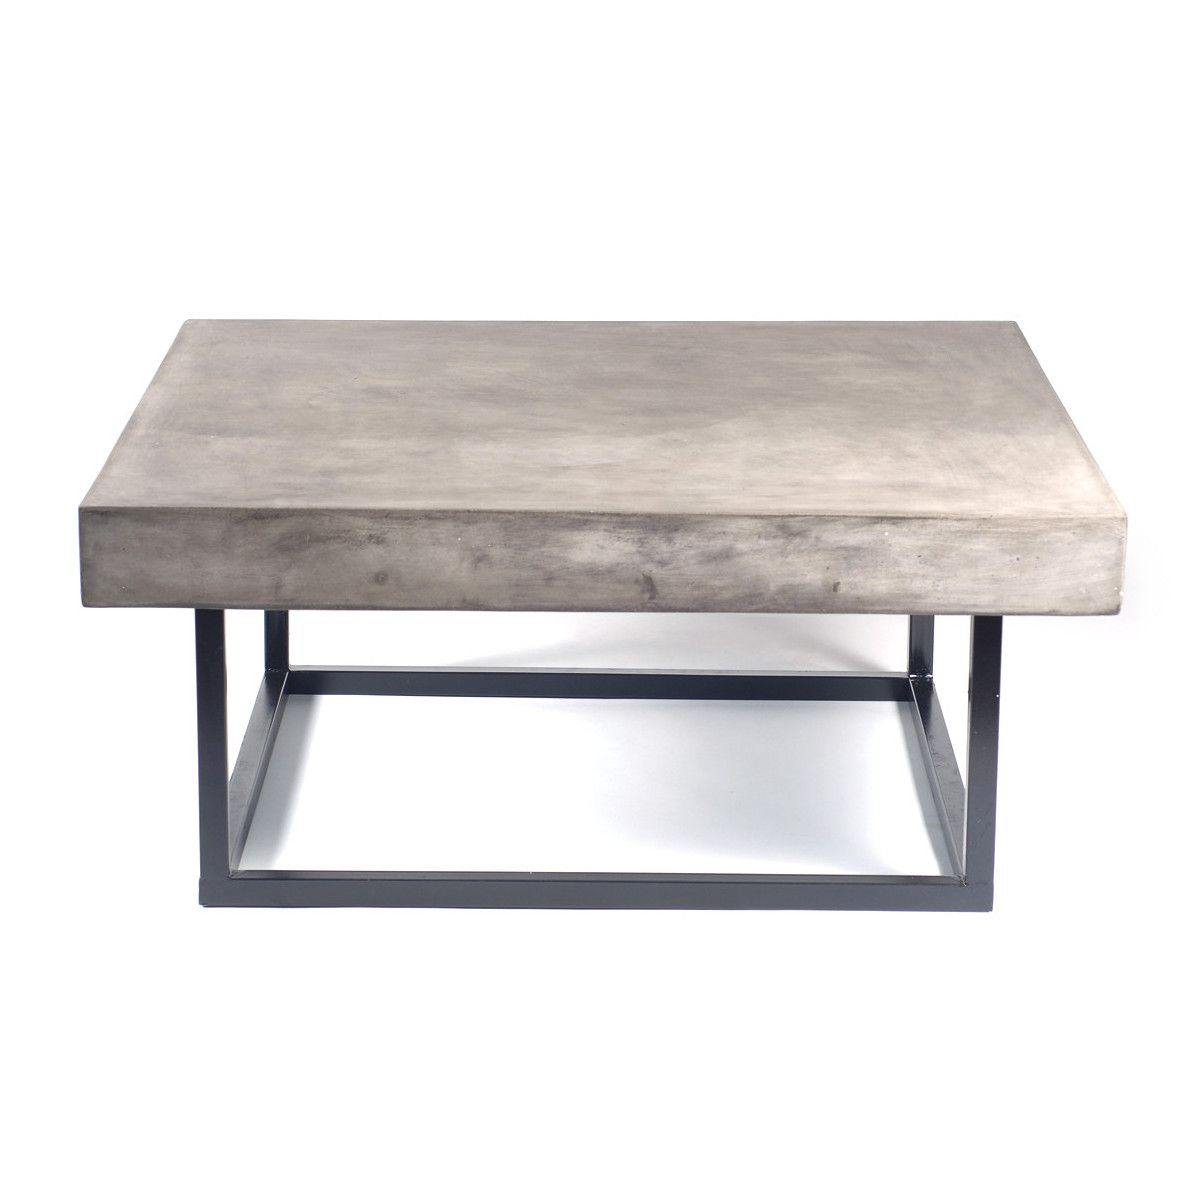 concrete outdoor side table home design ideas mia coffee for back patio square types diy fresh marble and chrome accent west elm metal hairpin legs small desks spaces pottery barn